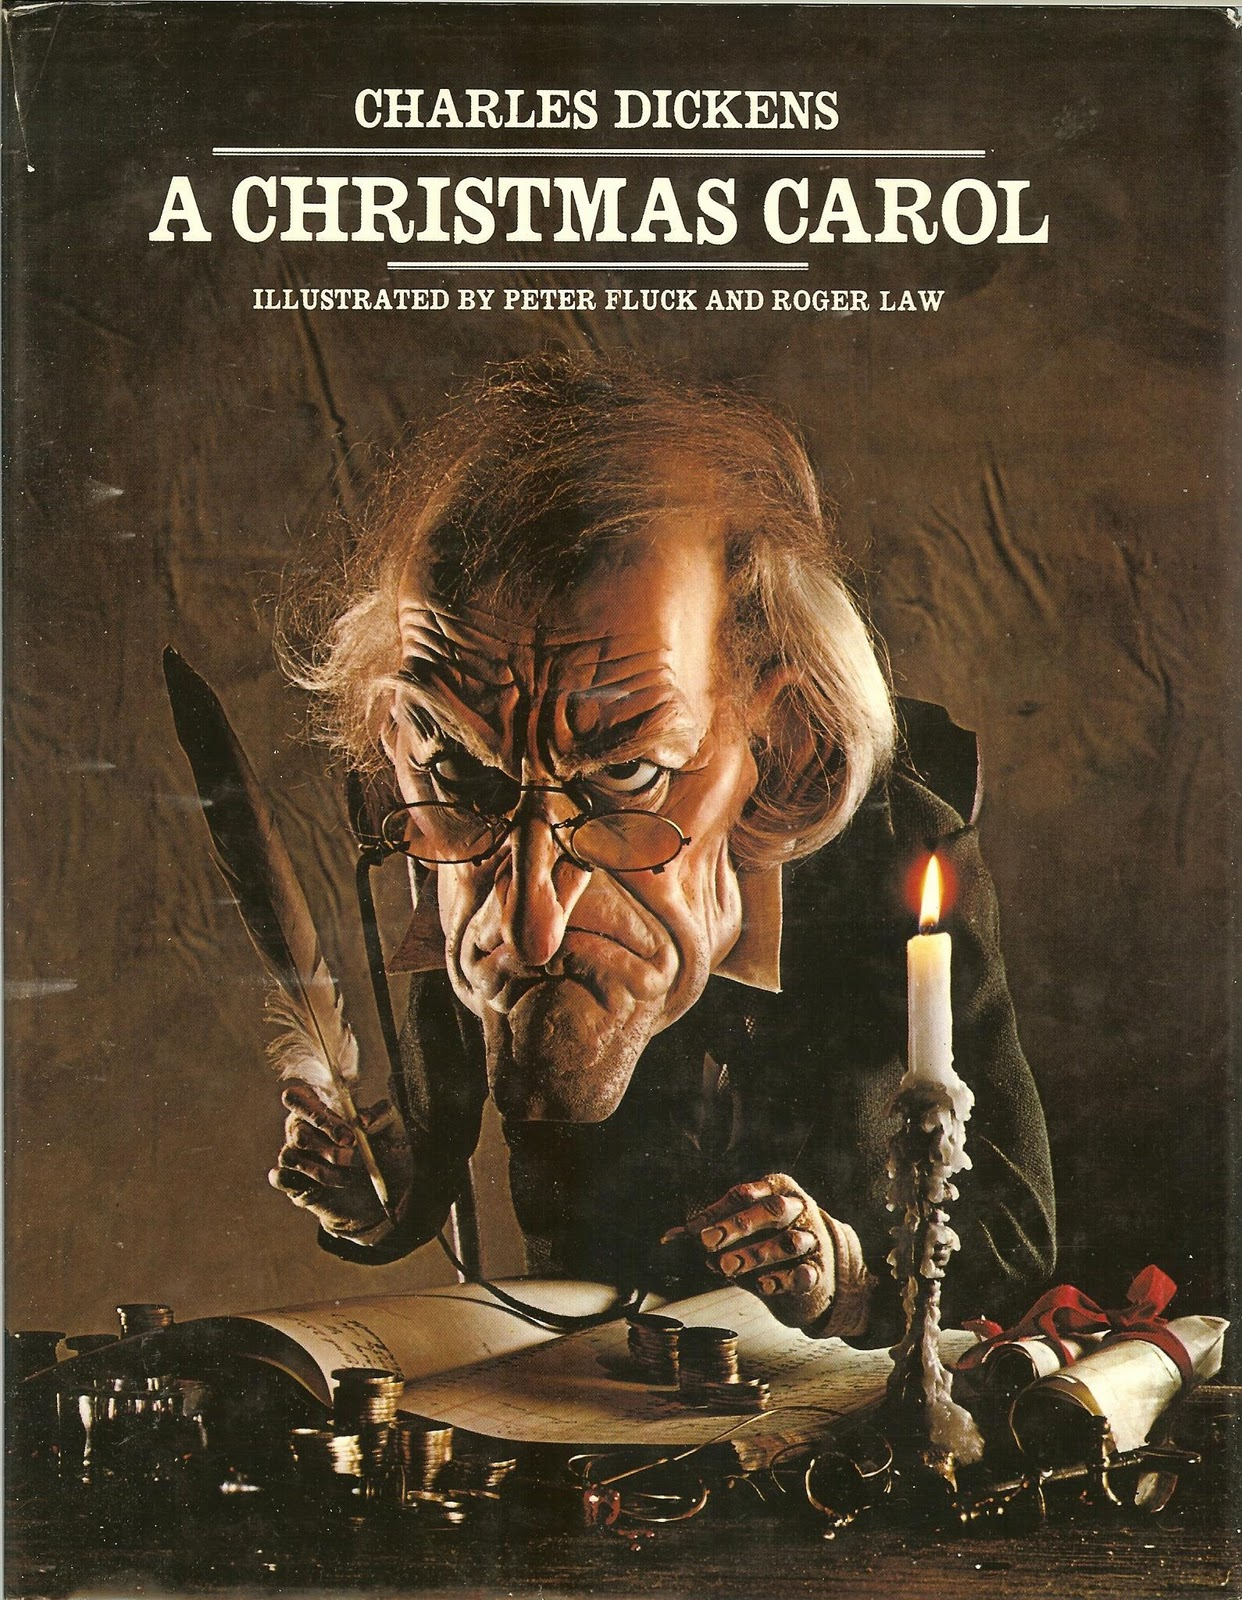 one of my all time favorite novels is charles dickens a christmas carol i have read this book many times i just finished reading it again yesterday